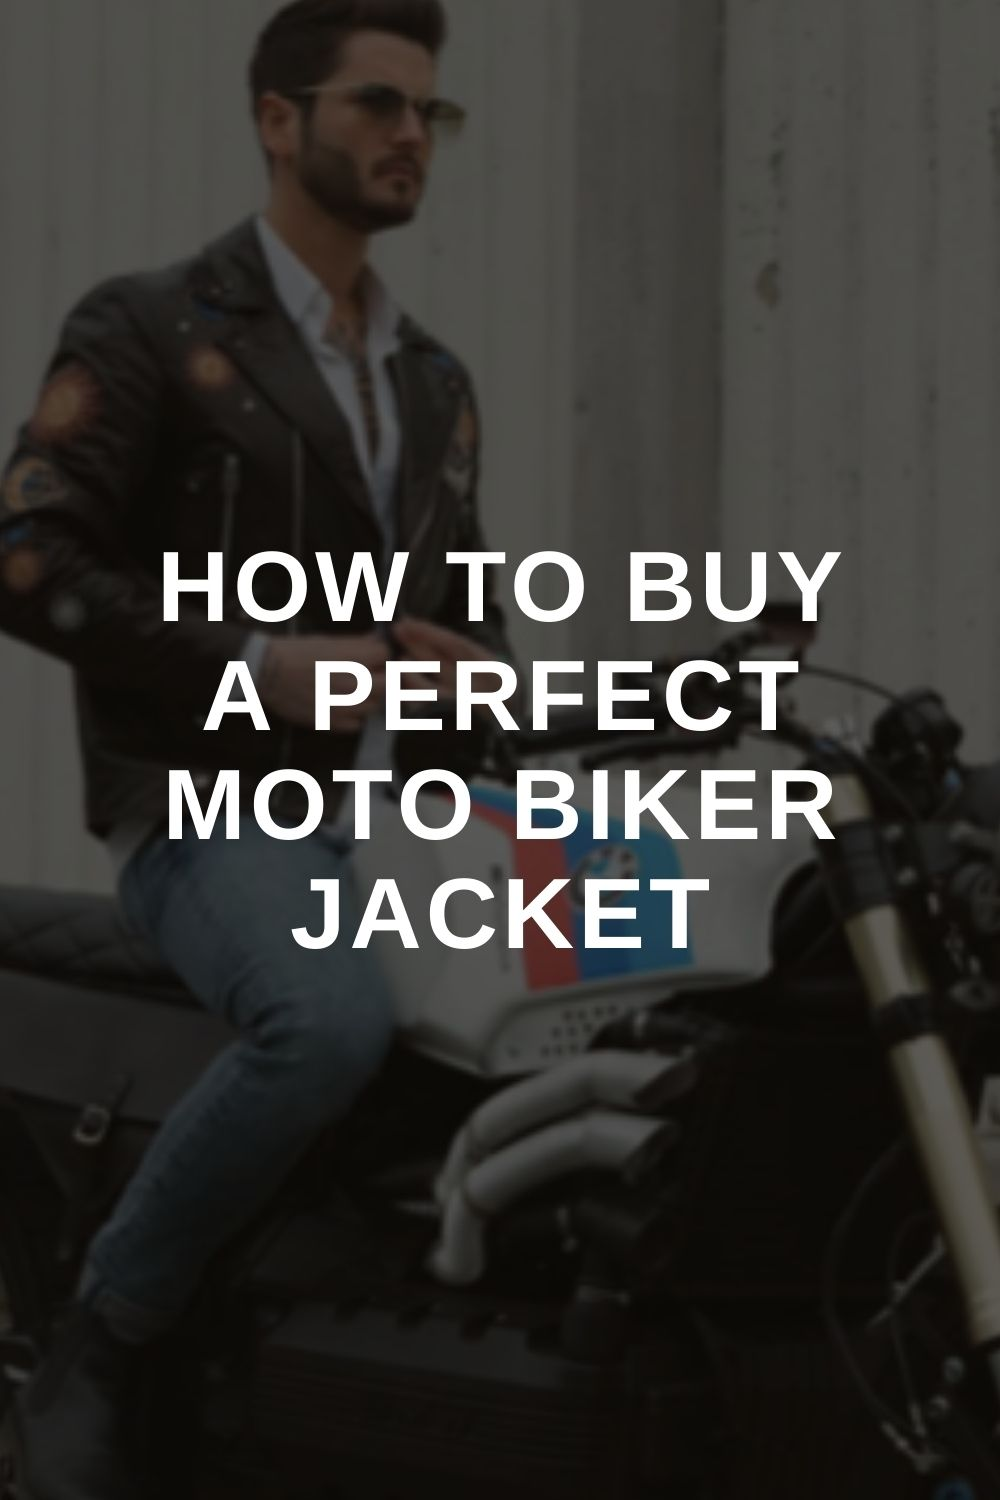 How To Buy A Perfect Moto Biker Jacket